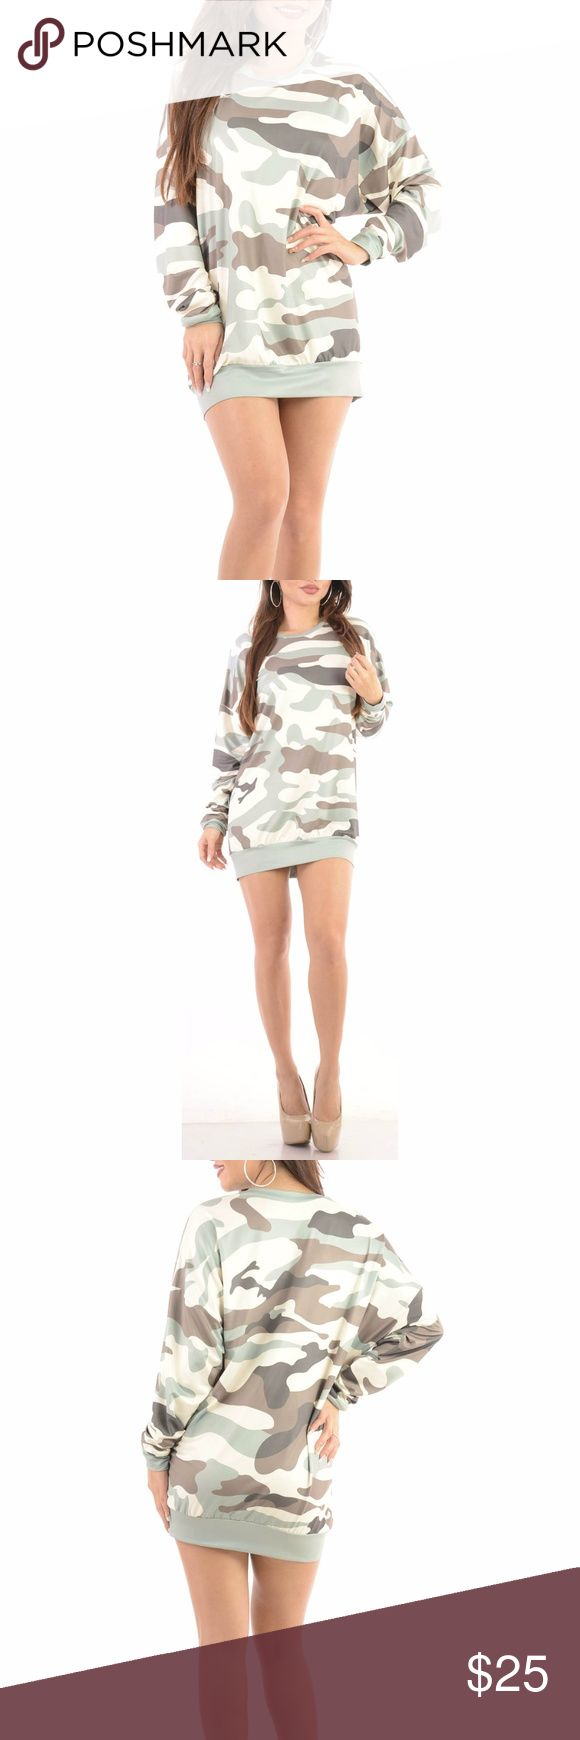 Sexy Short Camo Top Dress Print Military Club Look Model is wearing a small and the exact same style. Close up shows fabric quality-Color difference is lighting. Brand new with tag!  Small=size 2,3,4  Medium= size 5,6,7  Large= size 8,9,10  Fabric has stretch & Fit is similar to styles @ Hello Molly, ASOS, Showpo ,Hot Miami Styles, Sabo Skirt , NBD, Lulus ,Tobi, Touch Dolls, Great Glam, Fashion Nova & Nasty Gal b801  Visit my closet for more Styles!  *Click Add to bundle on two or more…